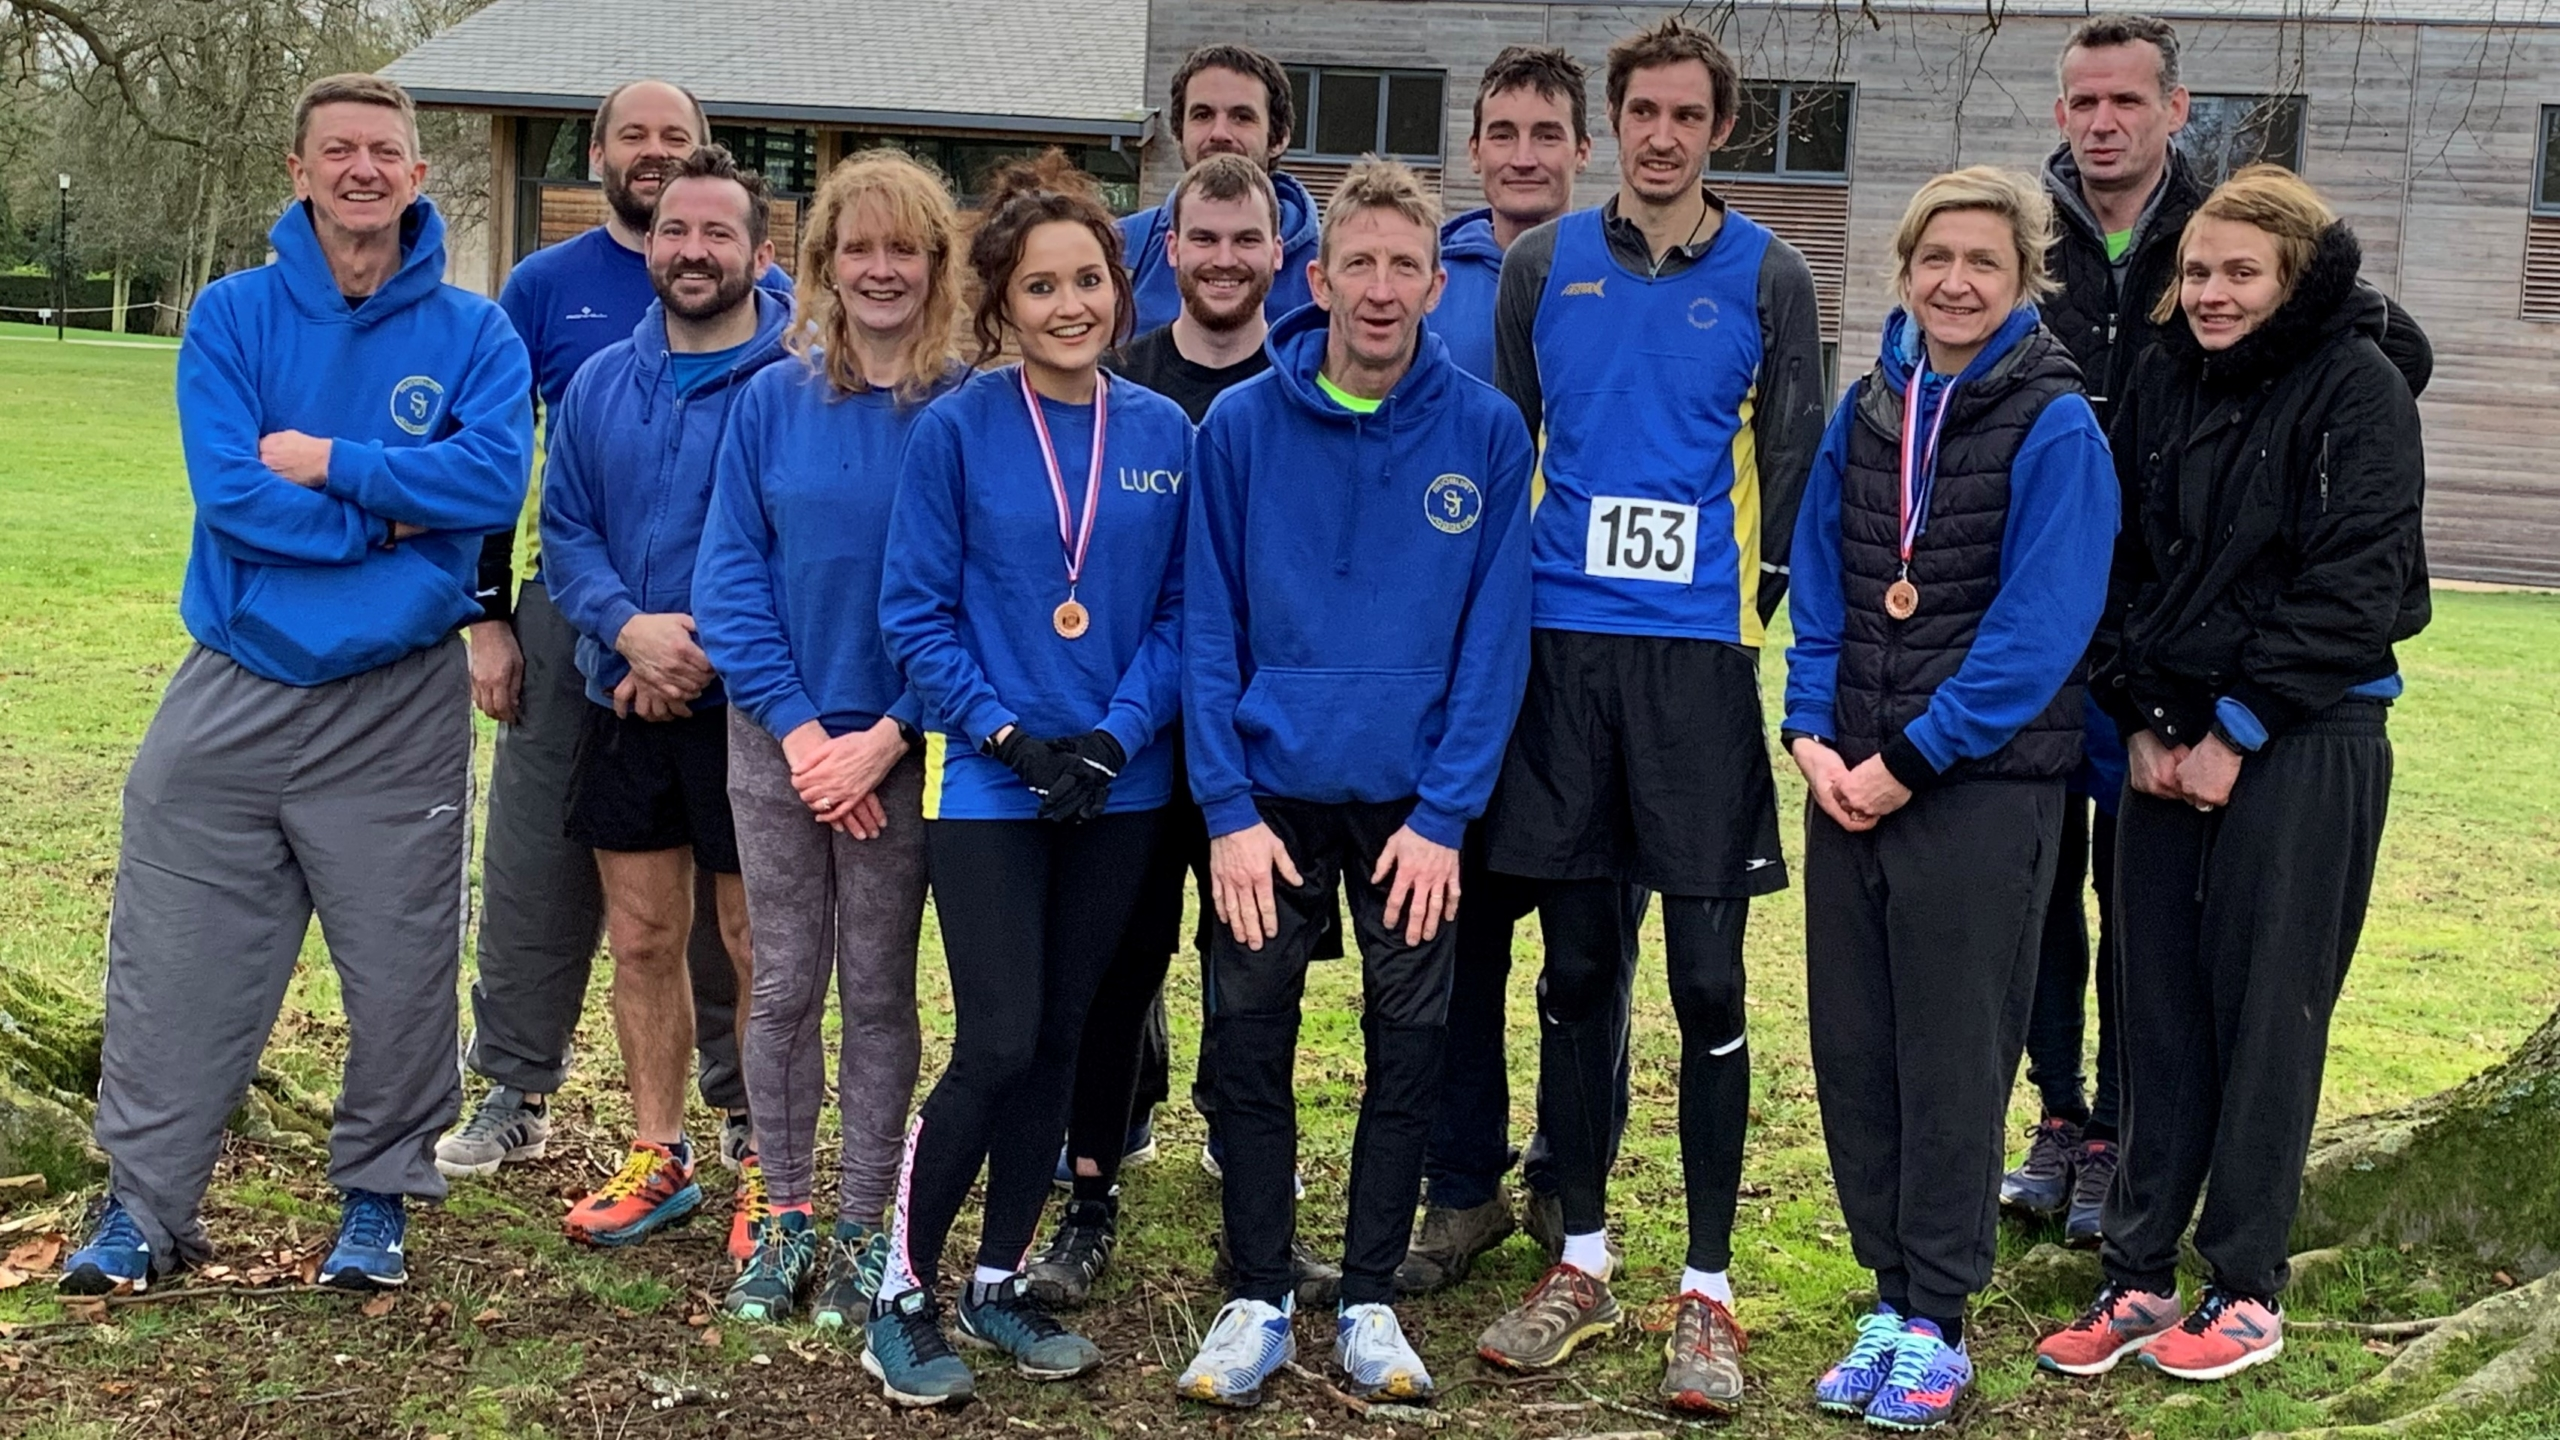 (L-R) Andy Buck, Matt Benson, Richard Smith, Ruth Cowlin, Lucy Cowlin, Kieron Hayles, Pete Mansfield, Todd Lewis, Charles Hann, Ben Cuthbert, Sally-Ann Bowen, Gary Perryman and Emma Drury at the Suffolk County Athletics Association Cross Country Championships.